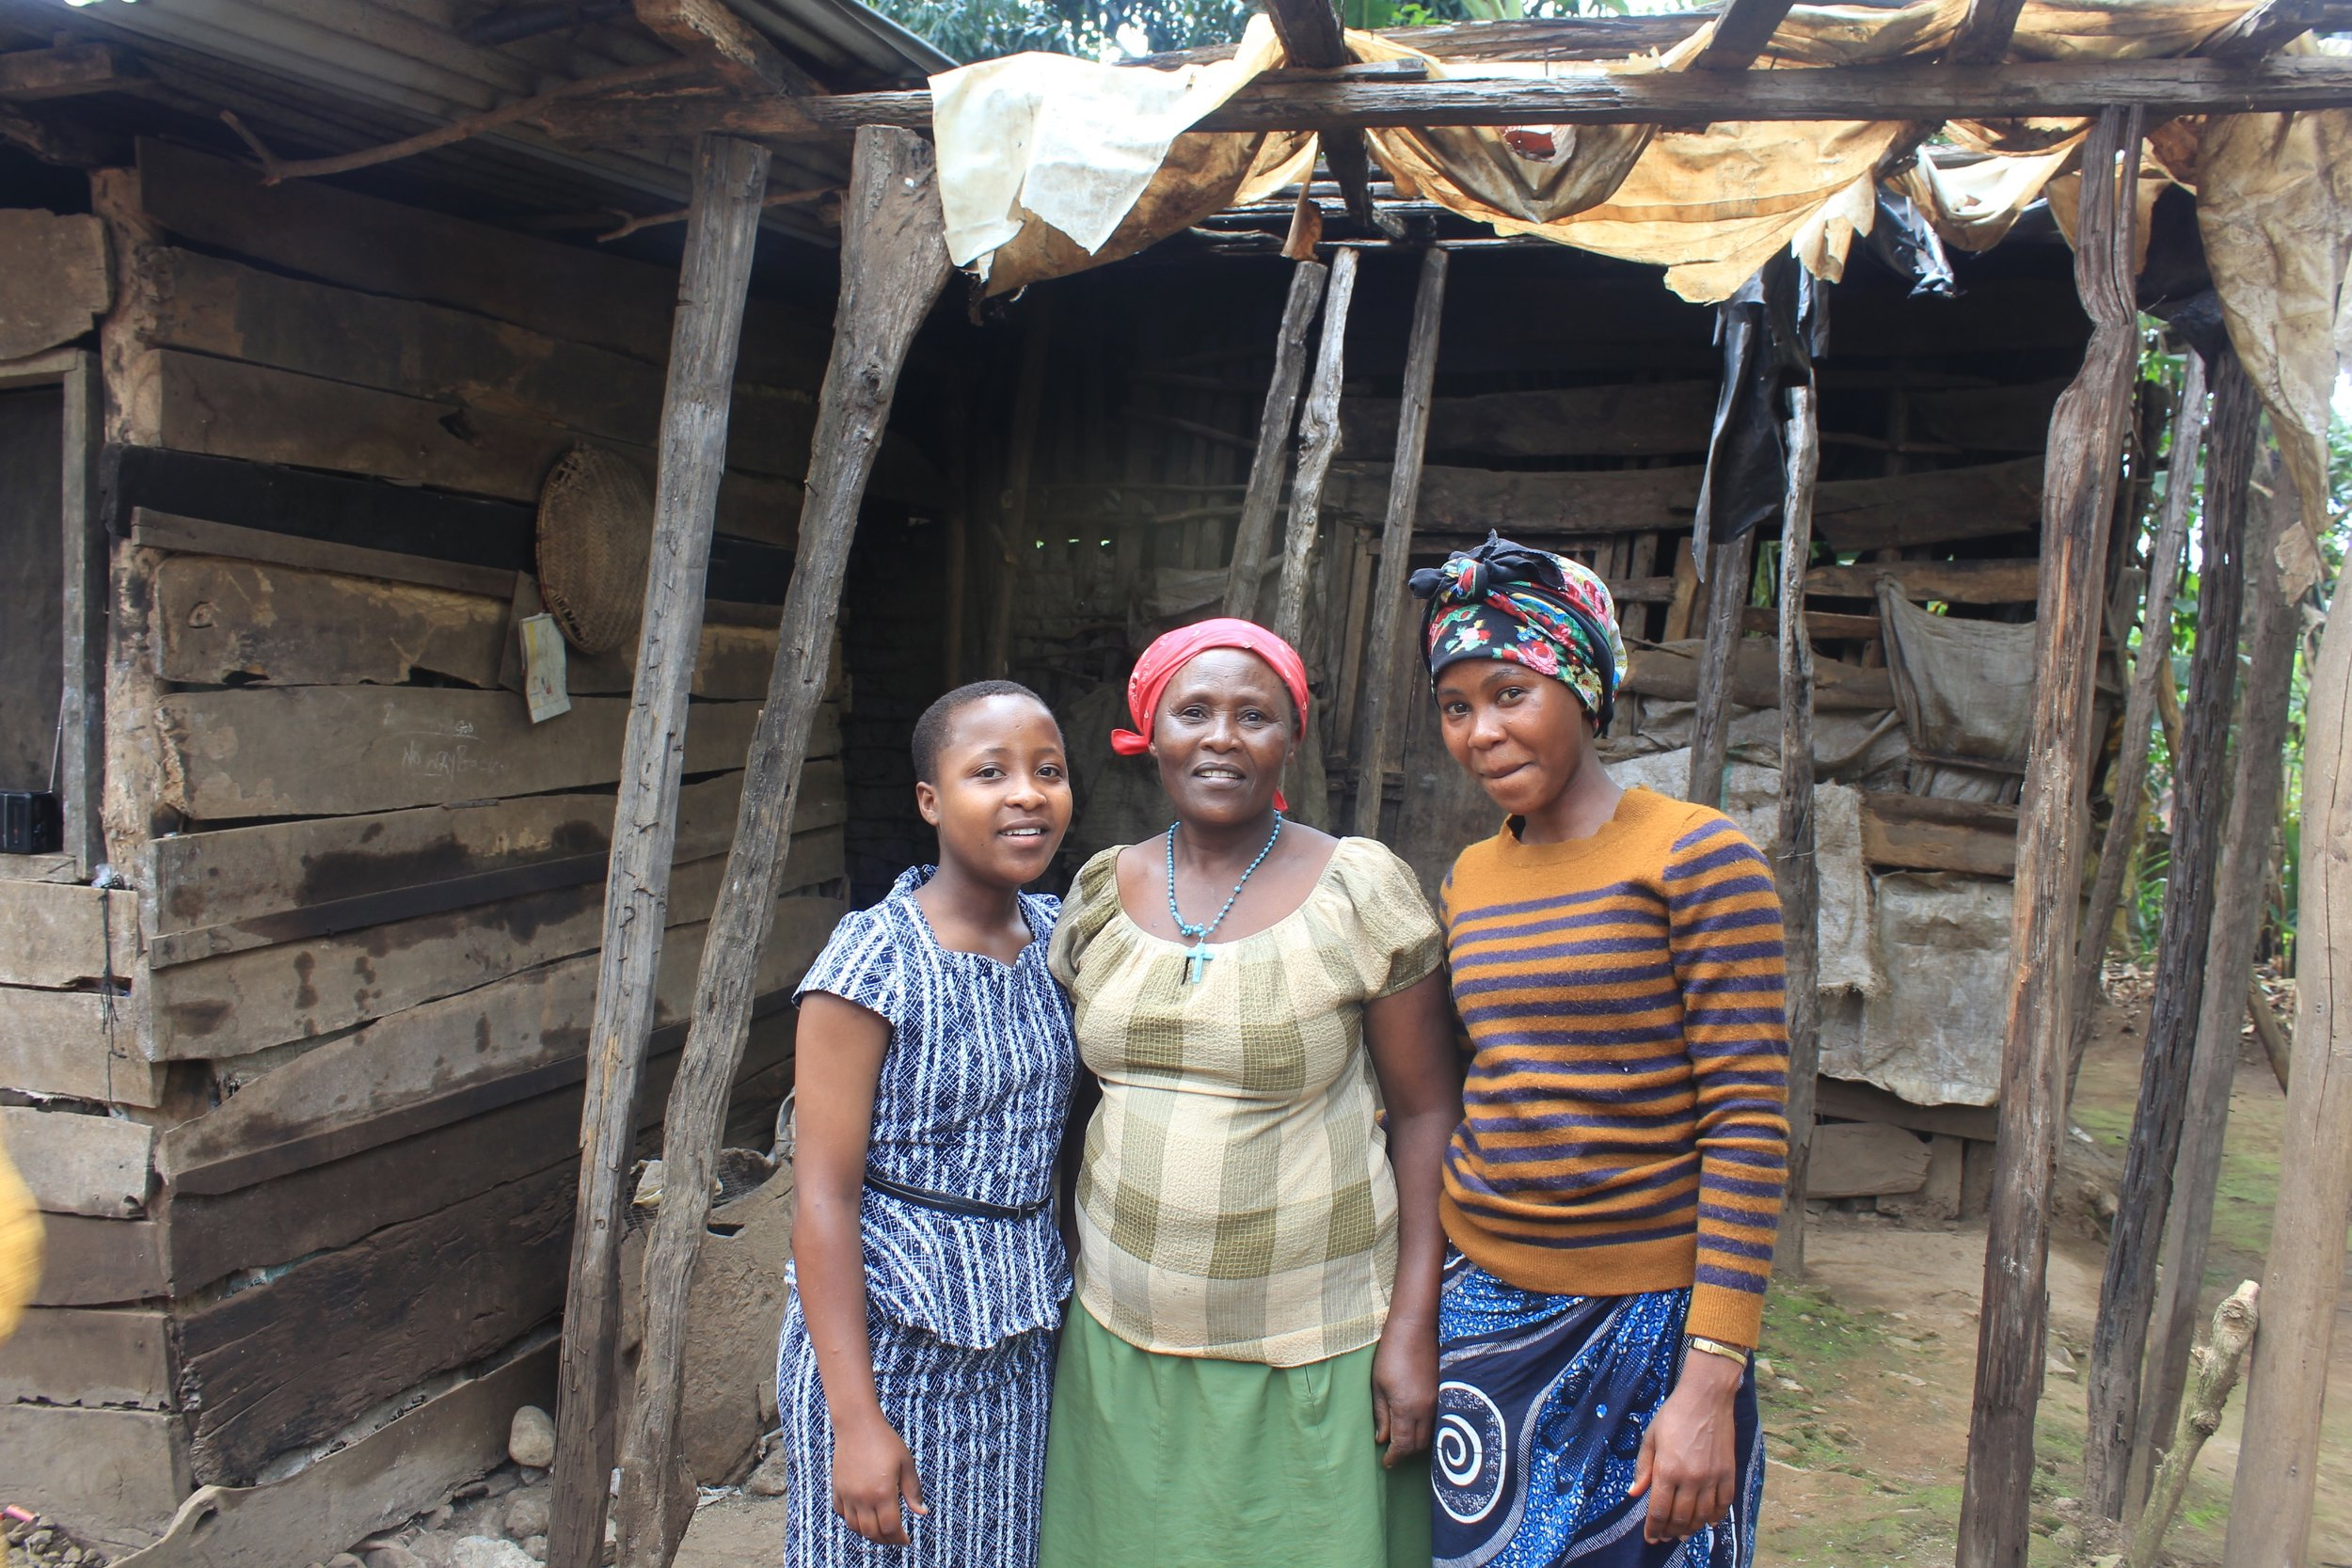 Melanie, her mom and her sister at at their home in Uru, Tanzania. (Courtesy of Nano Chatfield / The Girls Foundation of Tanzania)